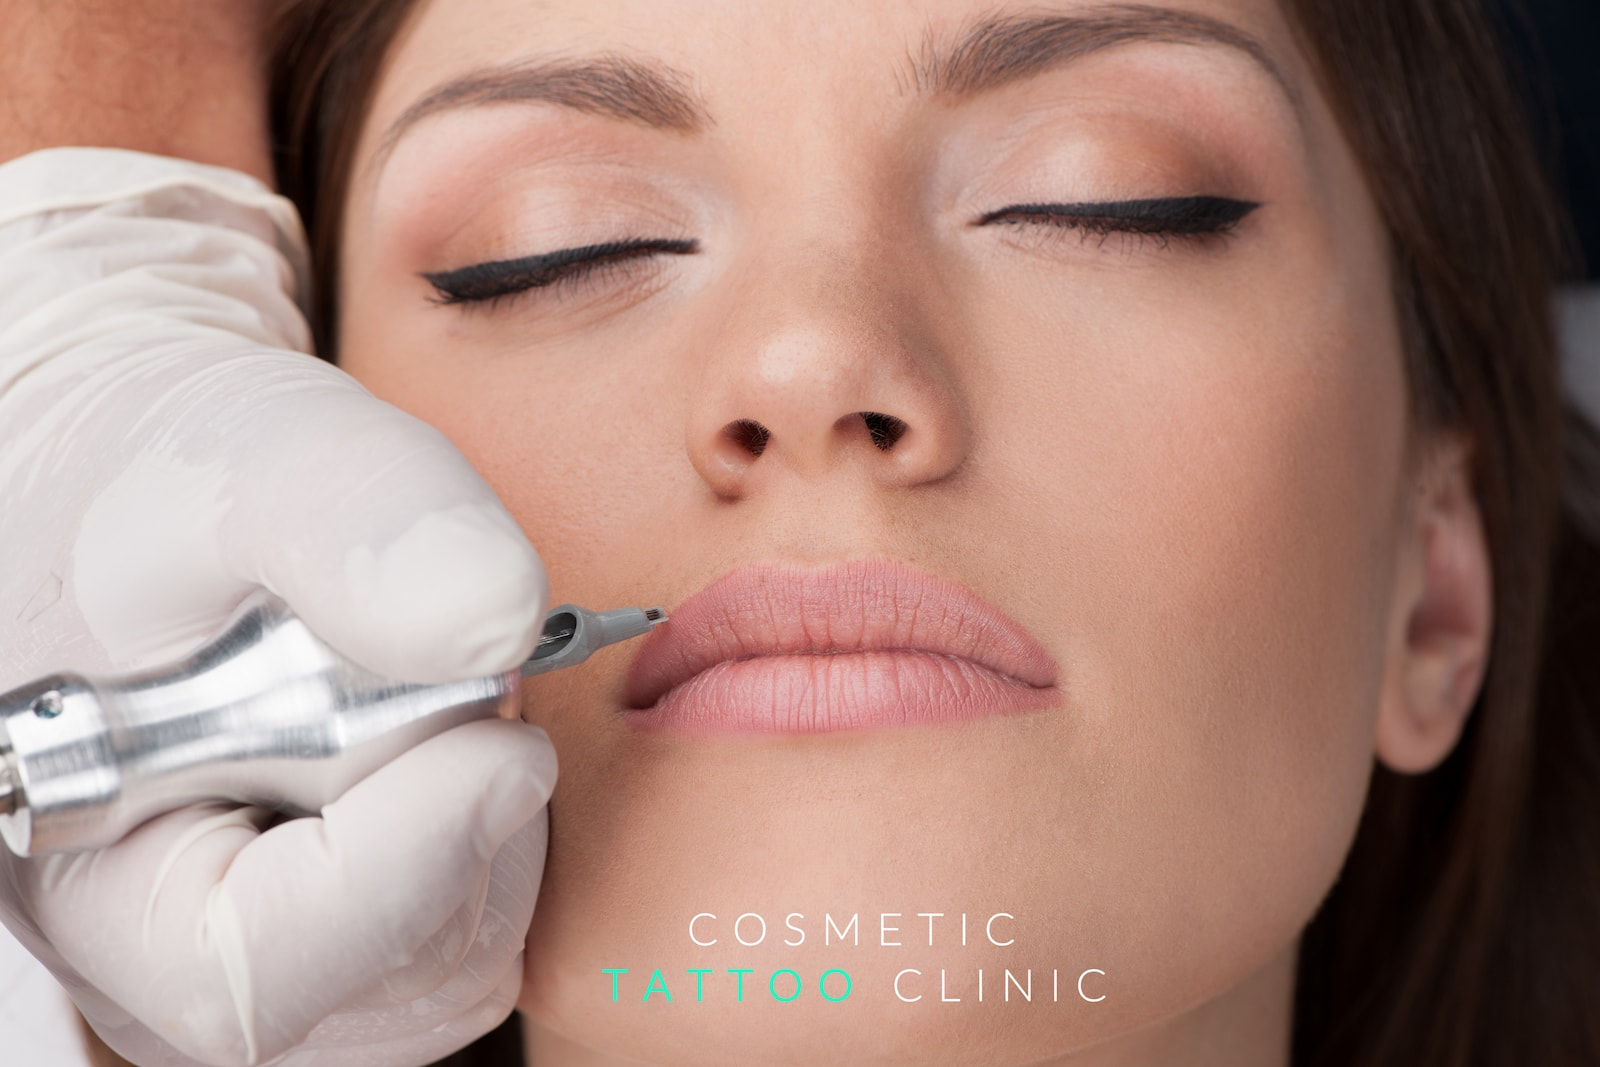 Cosmetic Tattoo Clinic